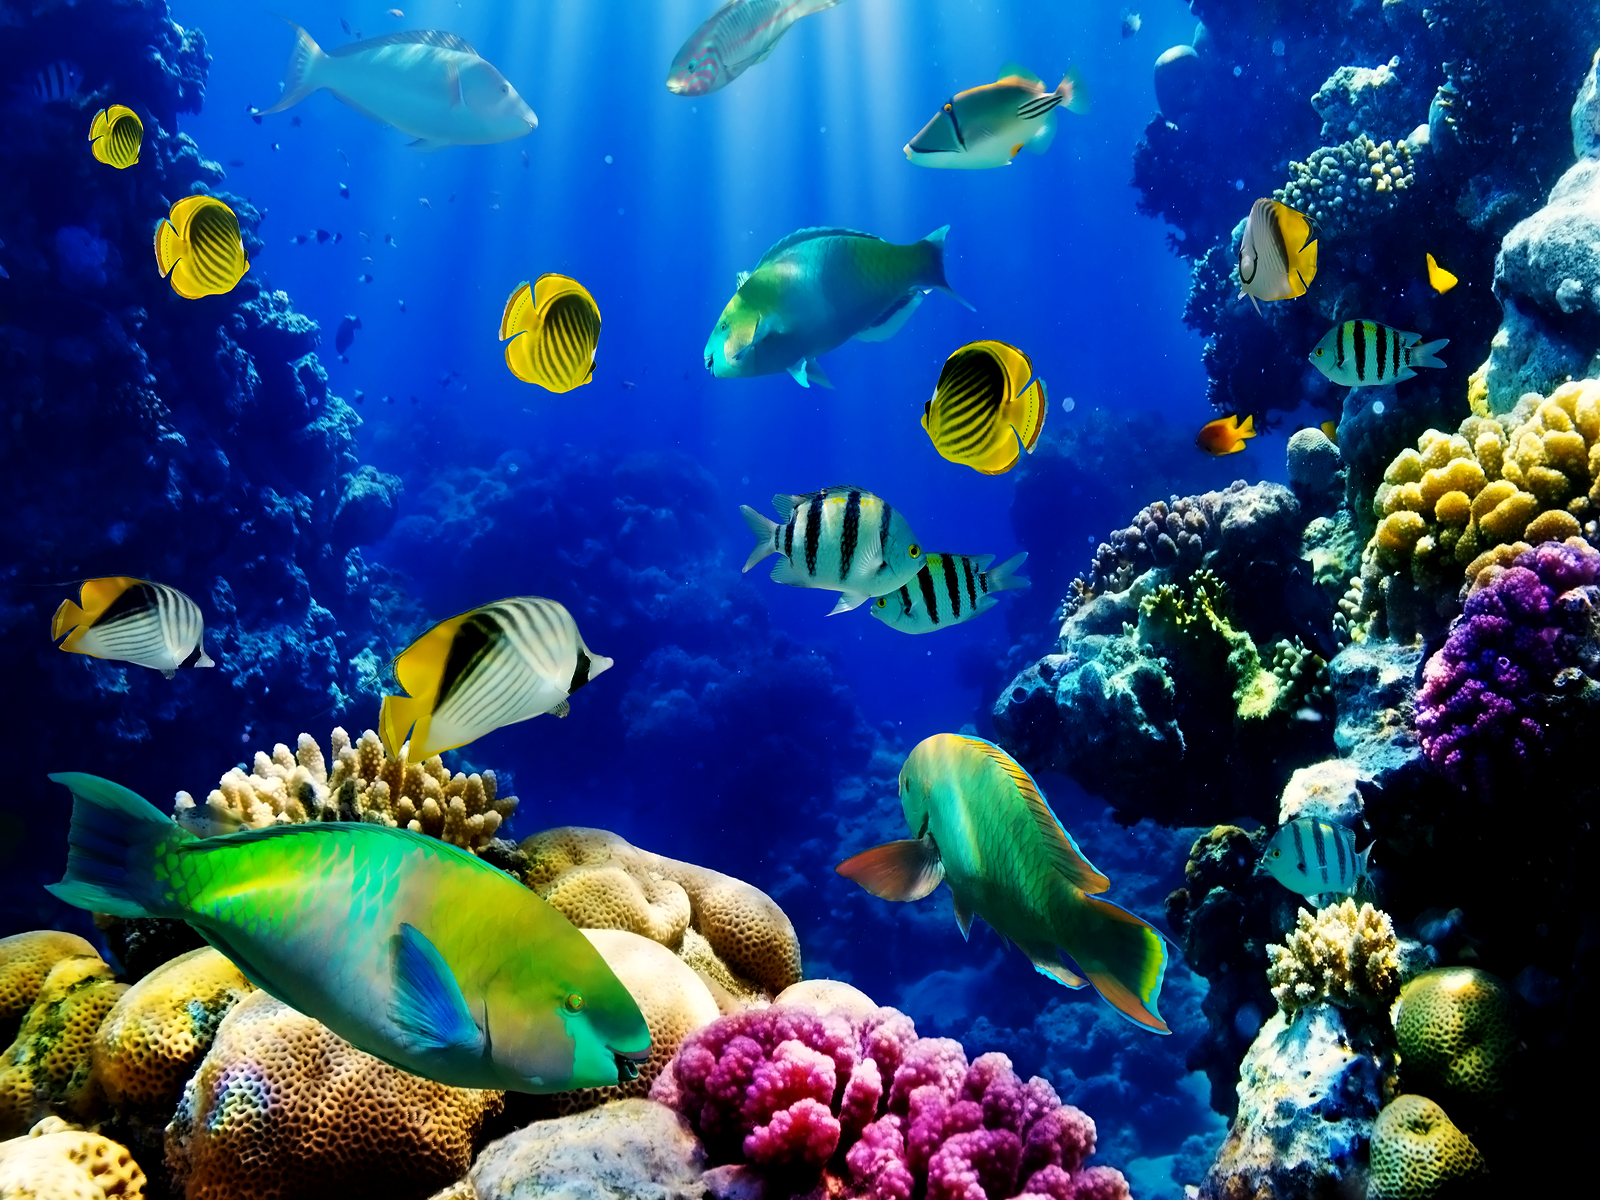 desktop fish tank moving wallpaper dowload desktop fish tank wallpaper 1600x1200